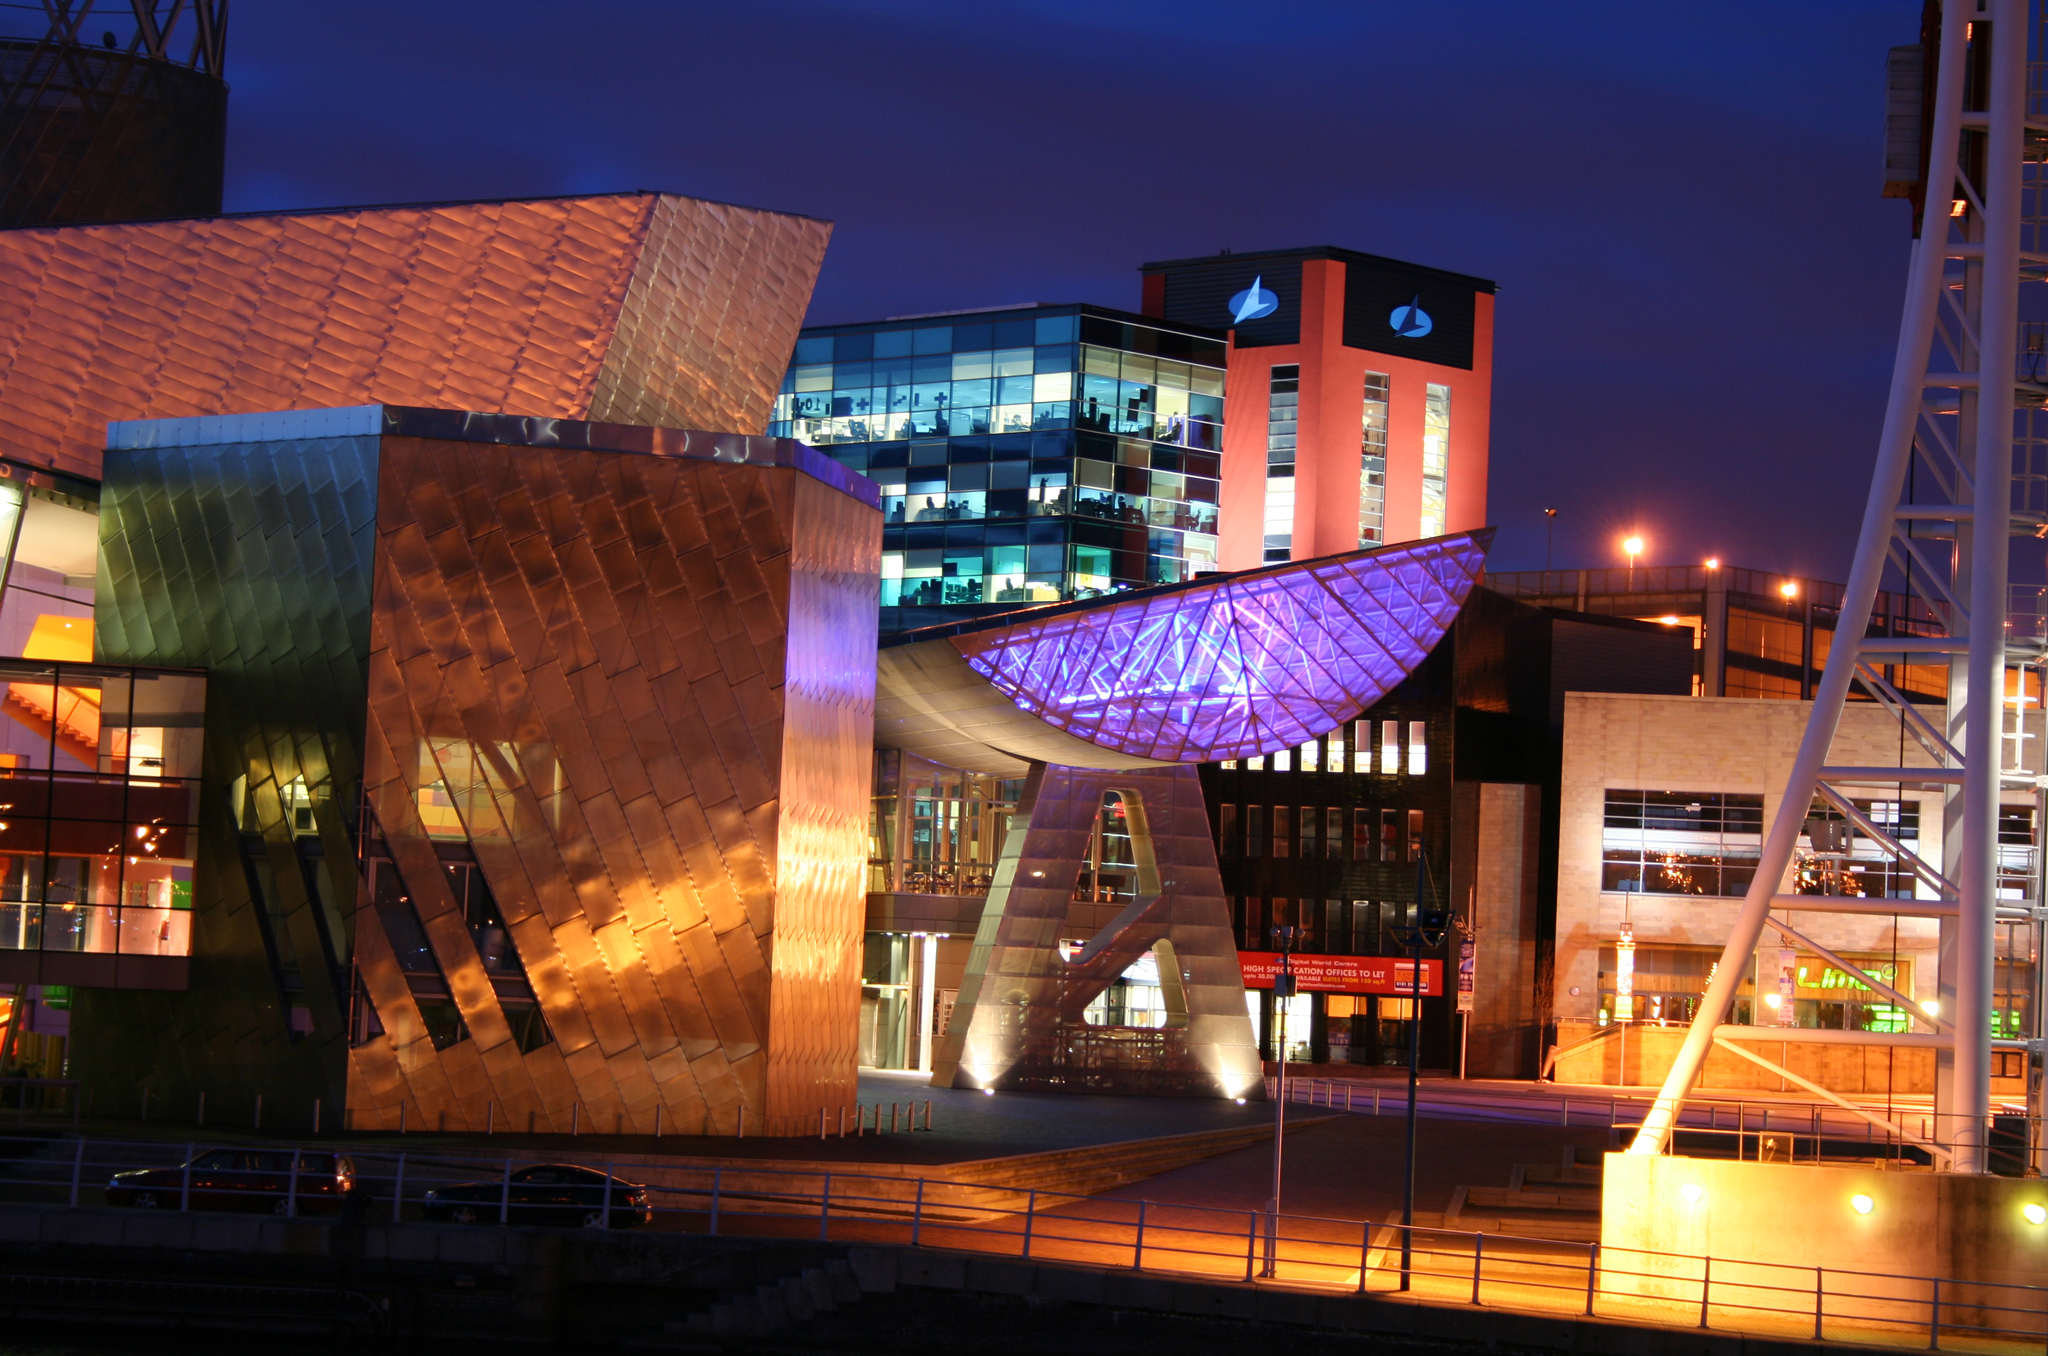 20 great things to do in Manchester